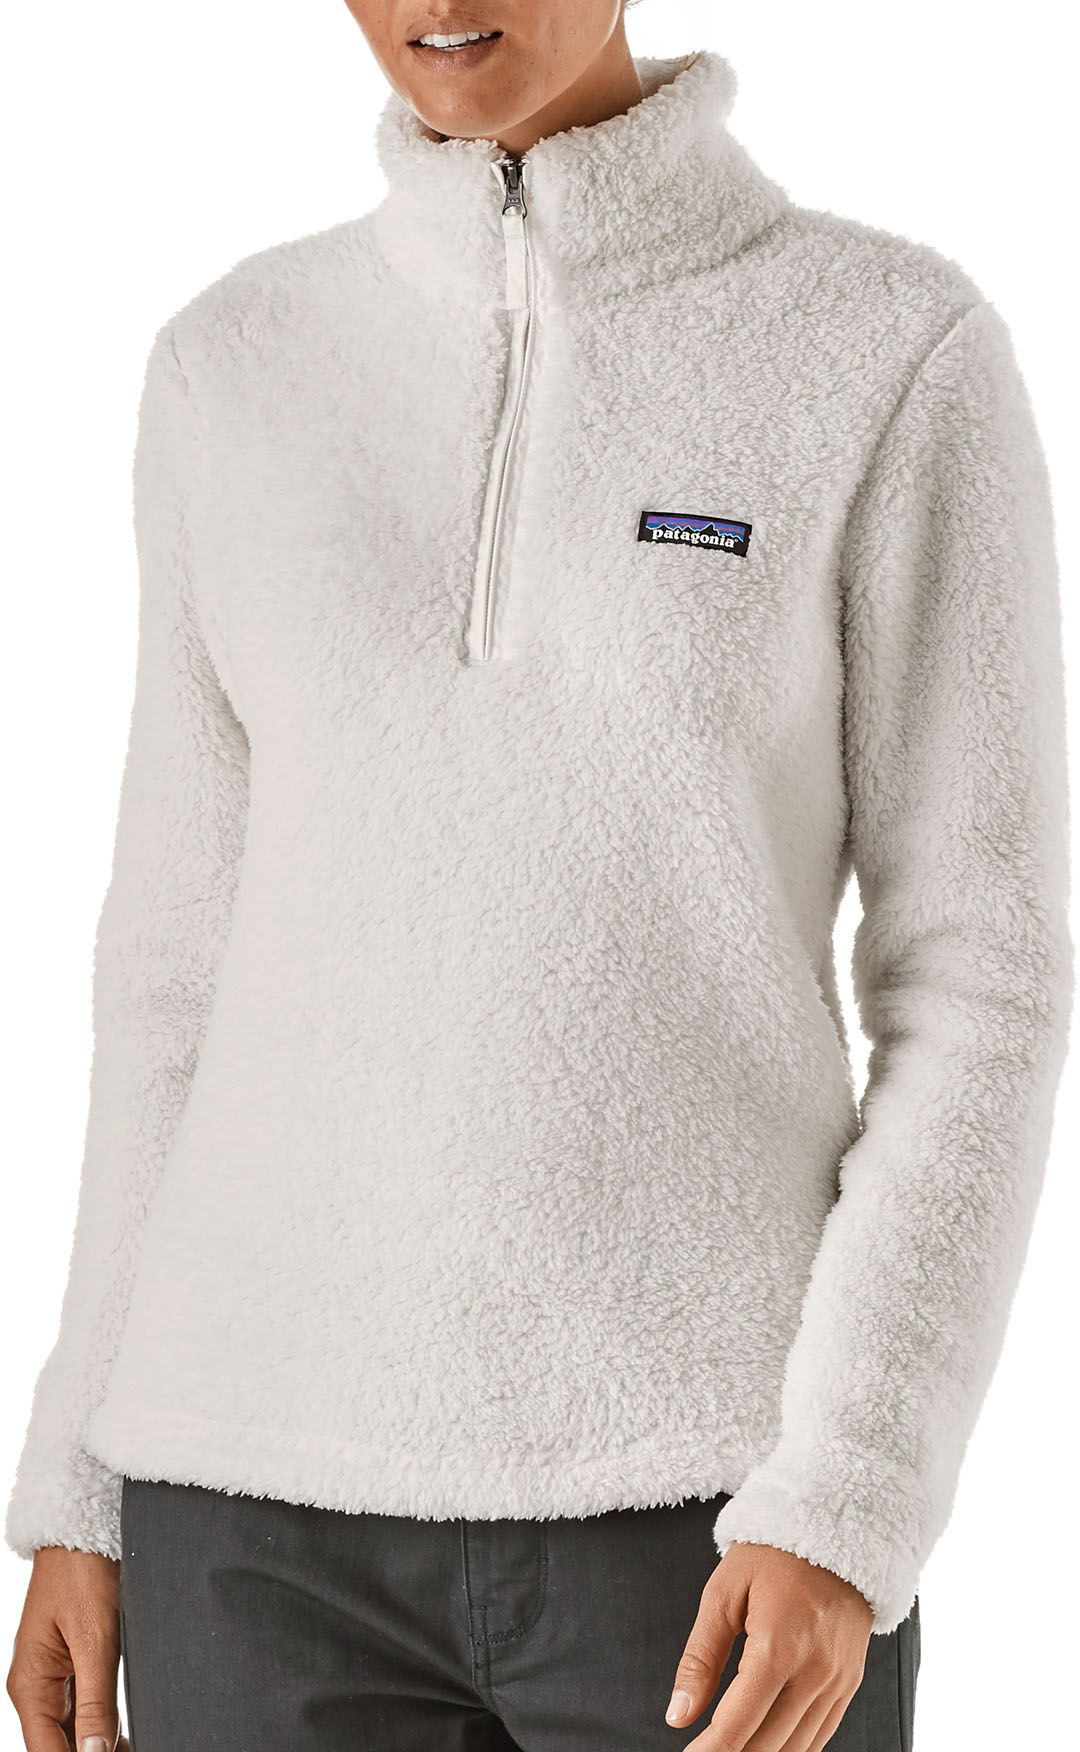 Patagonia Women's Los Gatos Quarter Zip Fleece Pullover | DICK'S ...